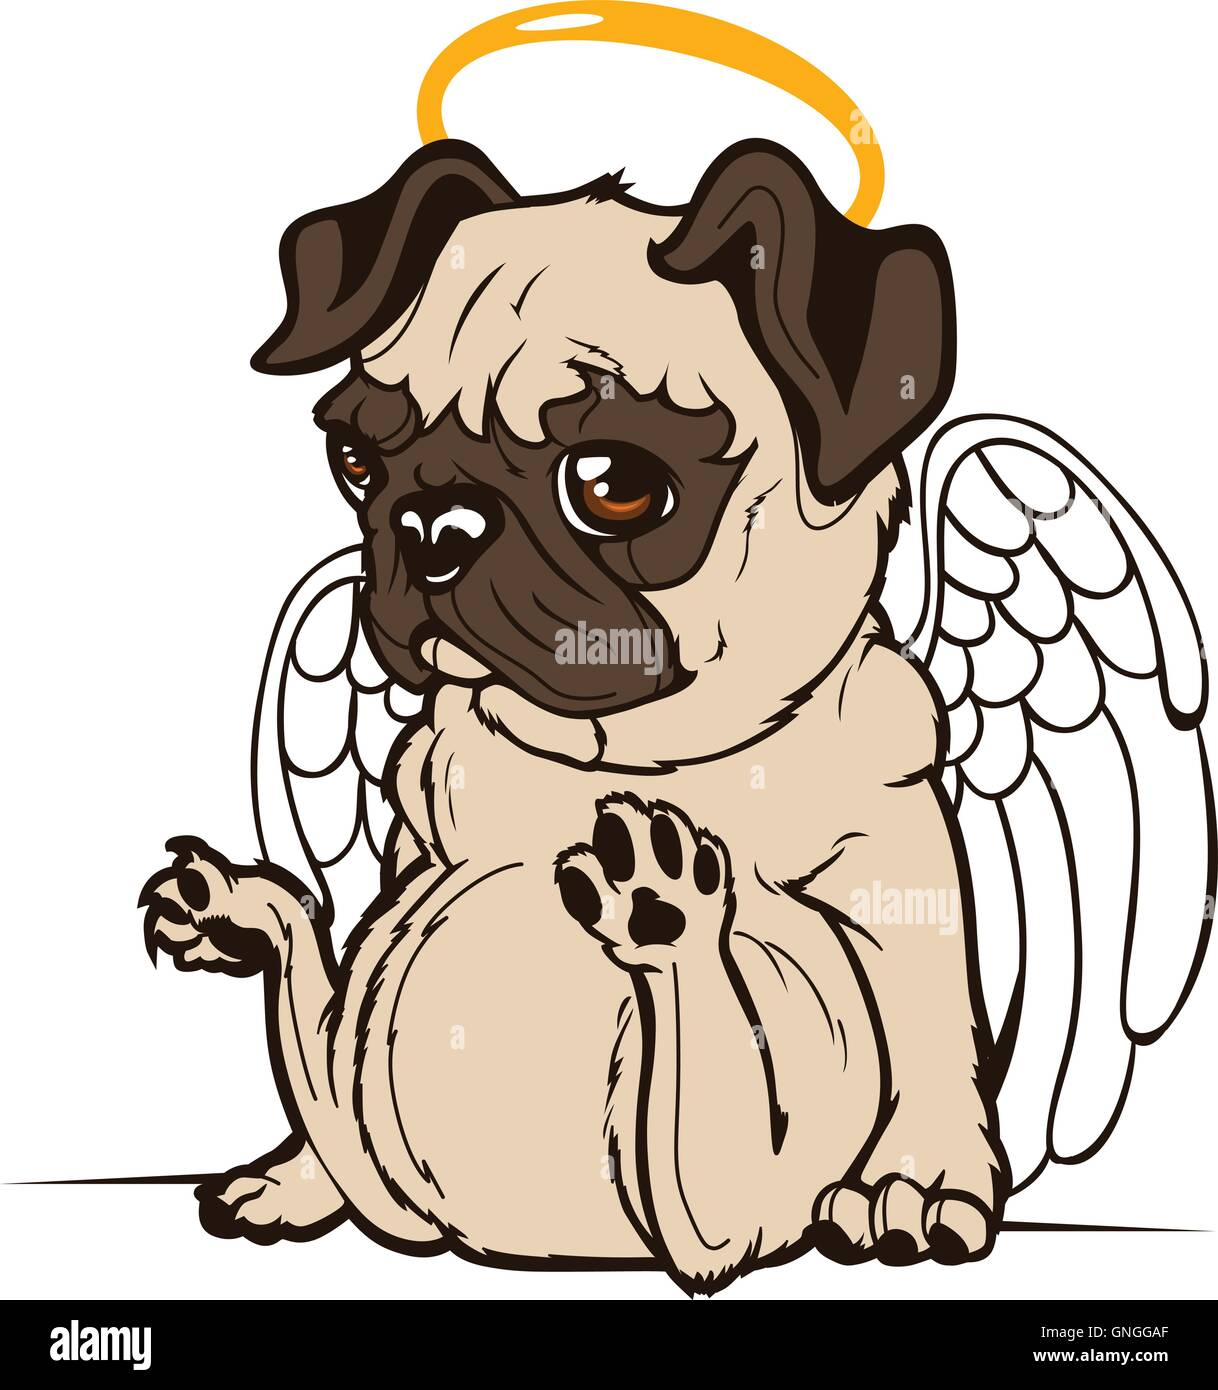 Pug Puppy Angel - Stock Image